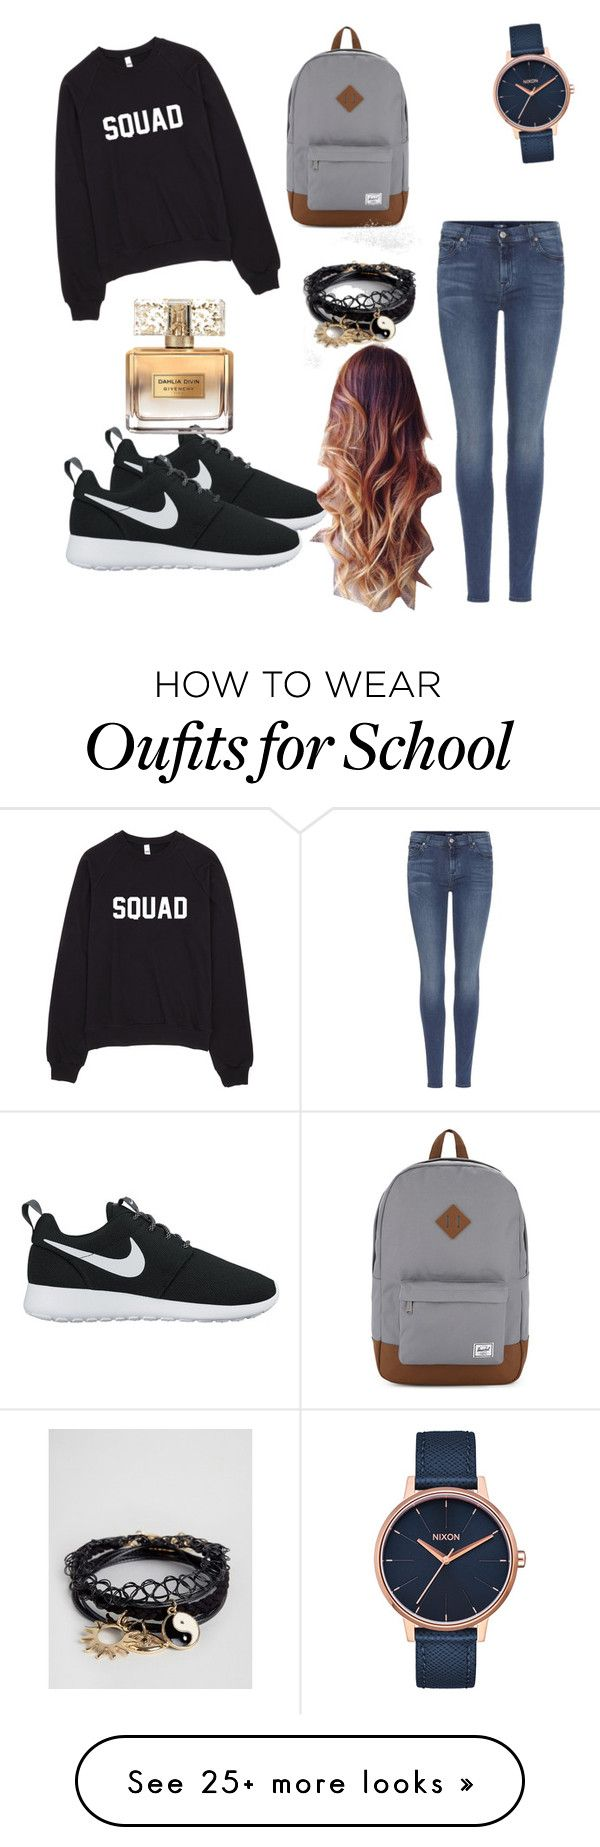 """Casual School Look {#10}"" by zainabchaoui on Polyvore featuring 7 For All Mankind, NIKE, Herschel Supply Co., Nixon, ASOS and Givenchy"